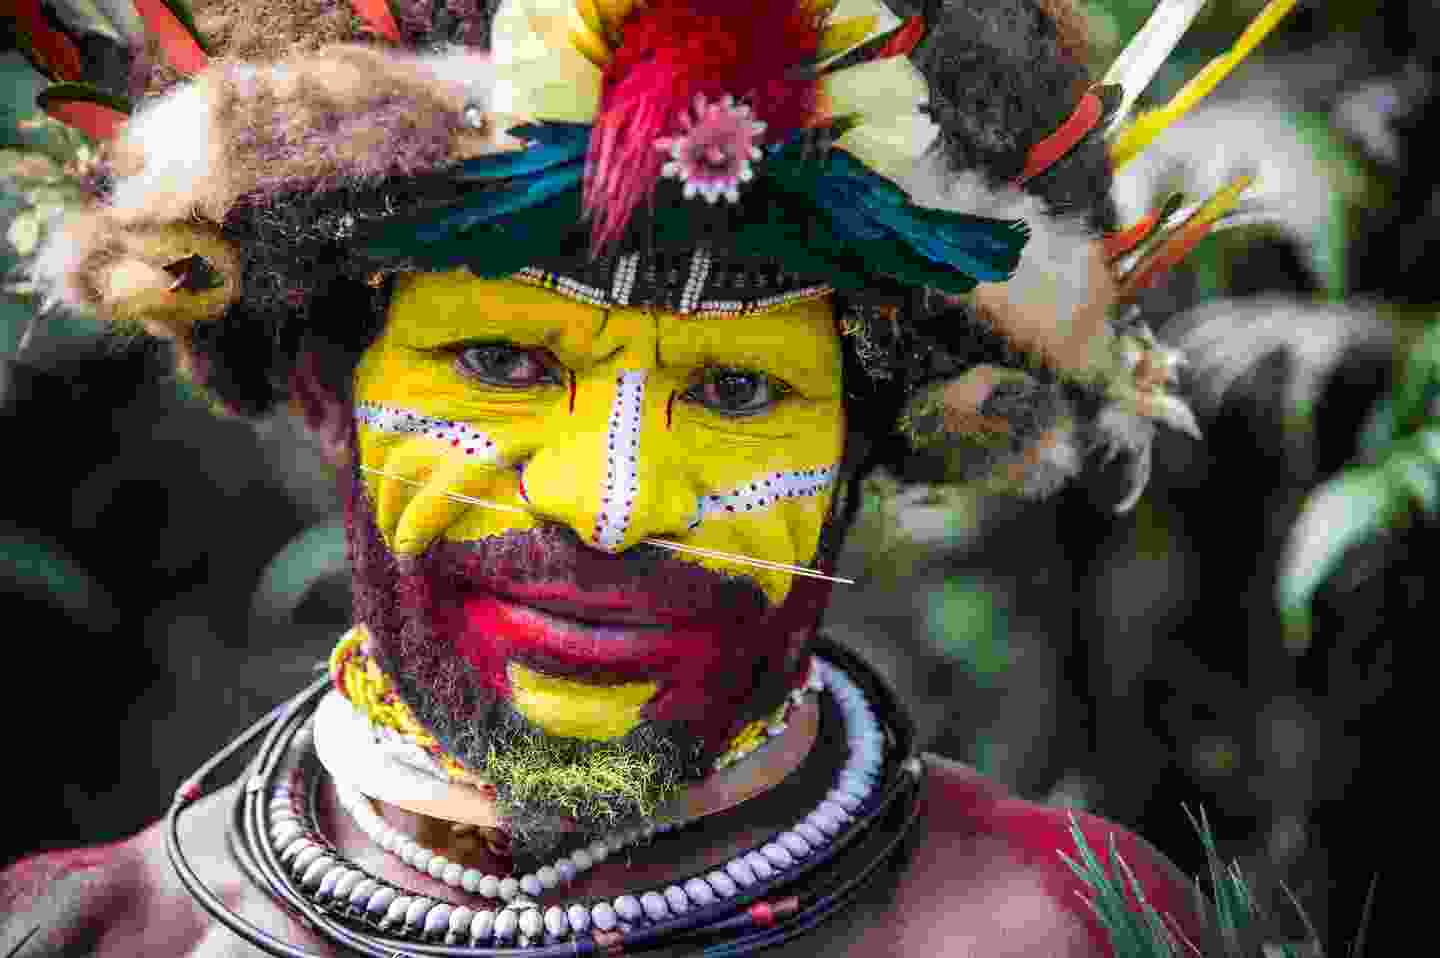 The men of the Huli tribe in Tari area of Papua New Guinea in traditional clothes and face paint (Shutterstock)